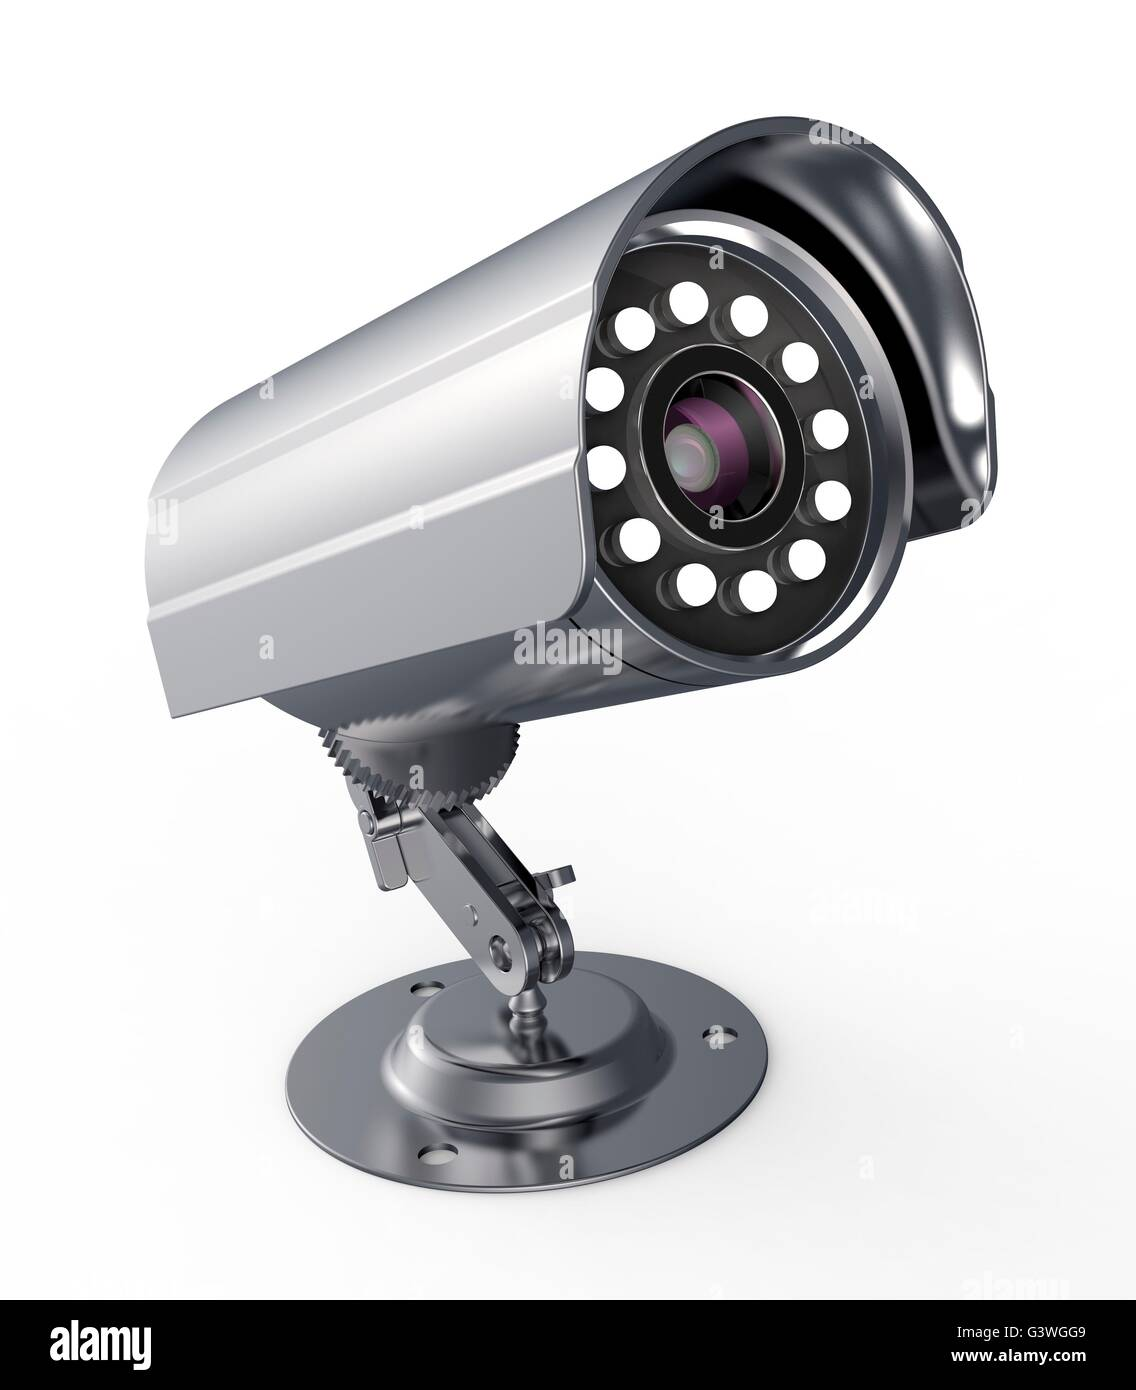 surveillance camera isolated on a white back ground. Stock Photo